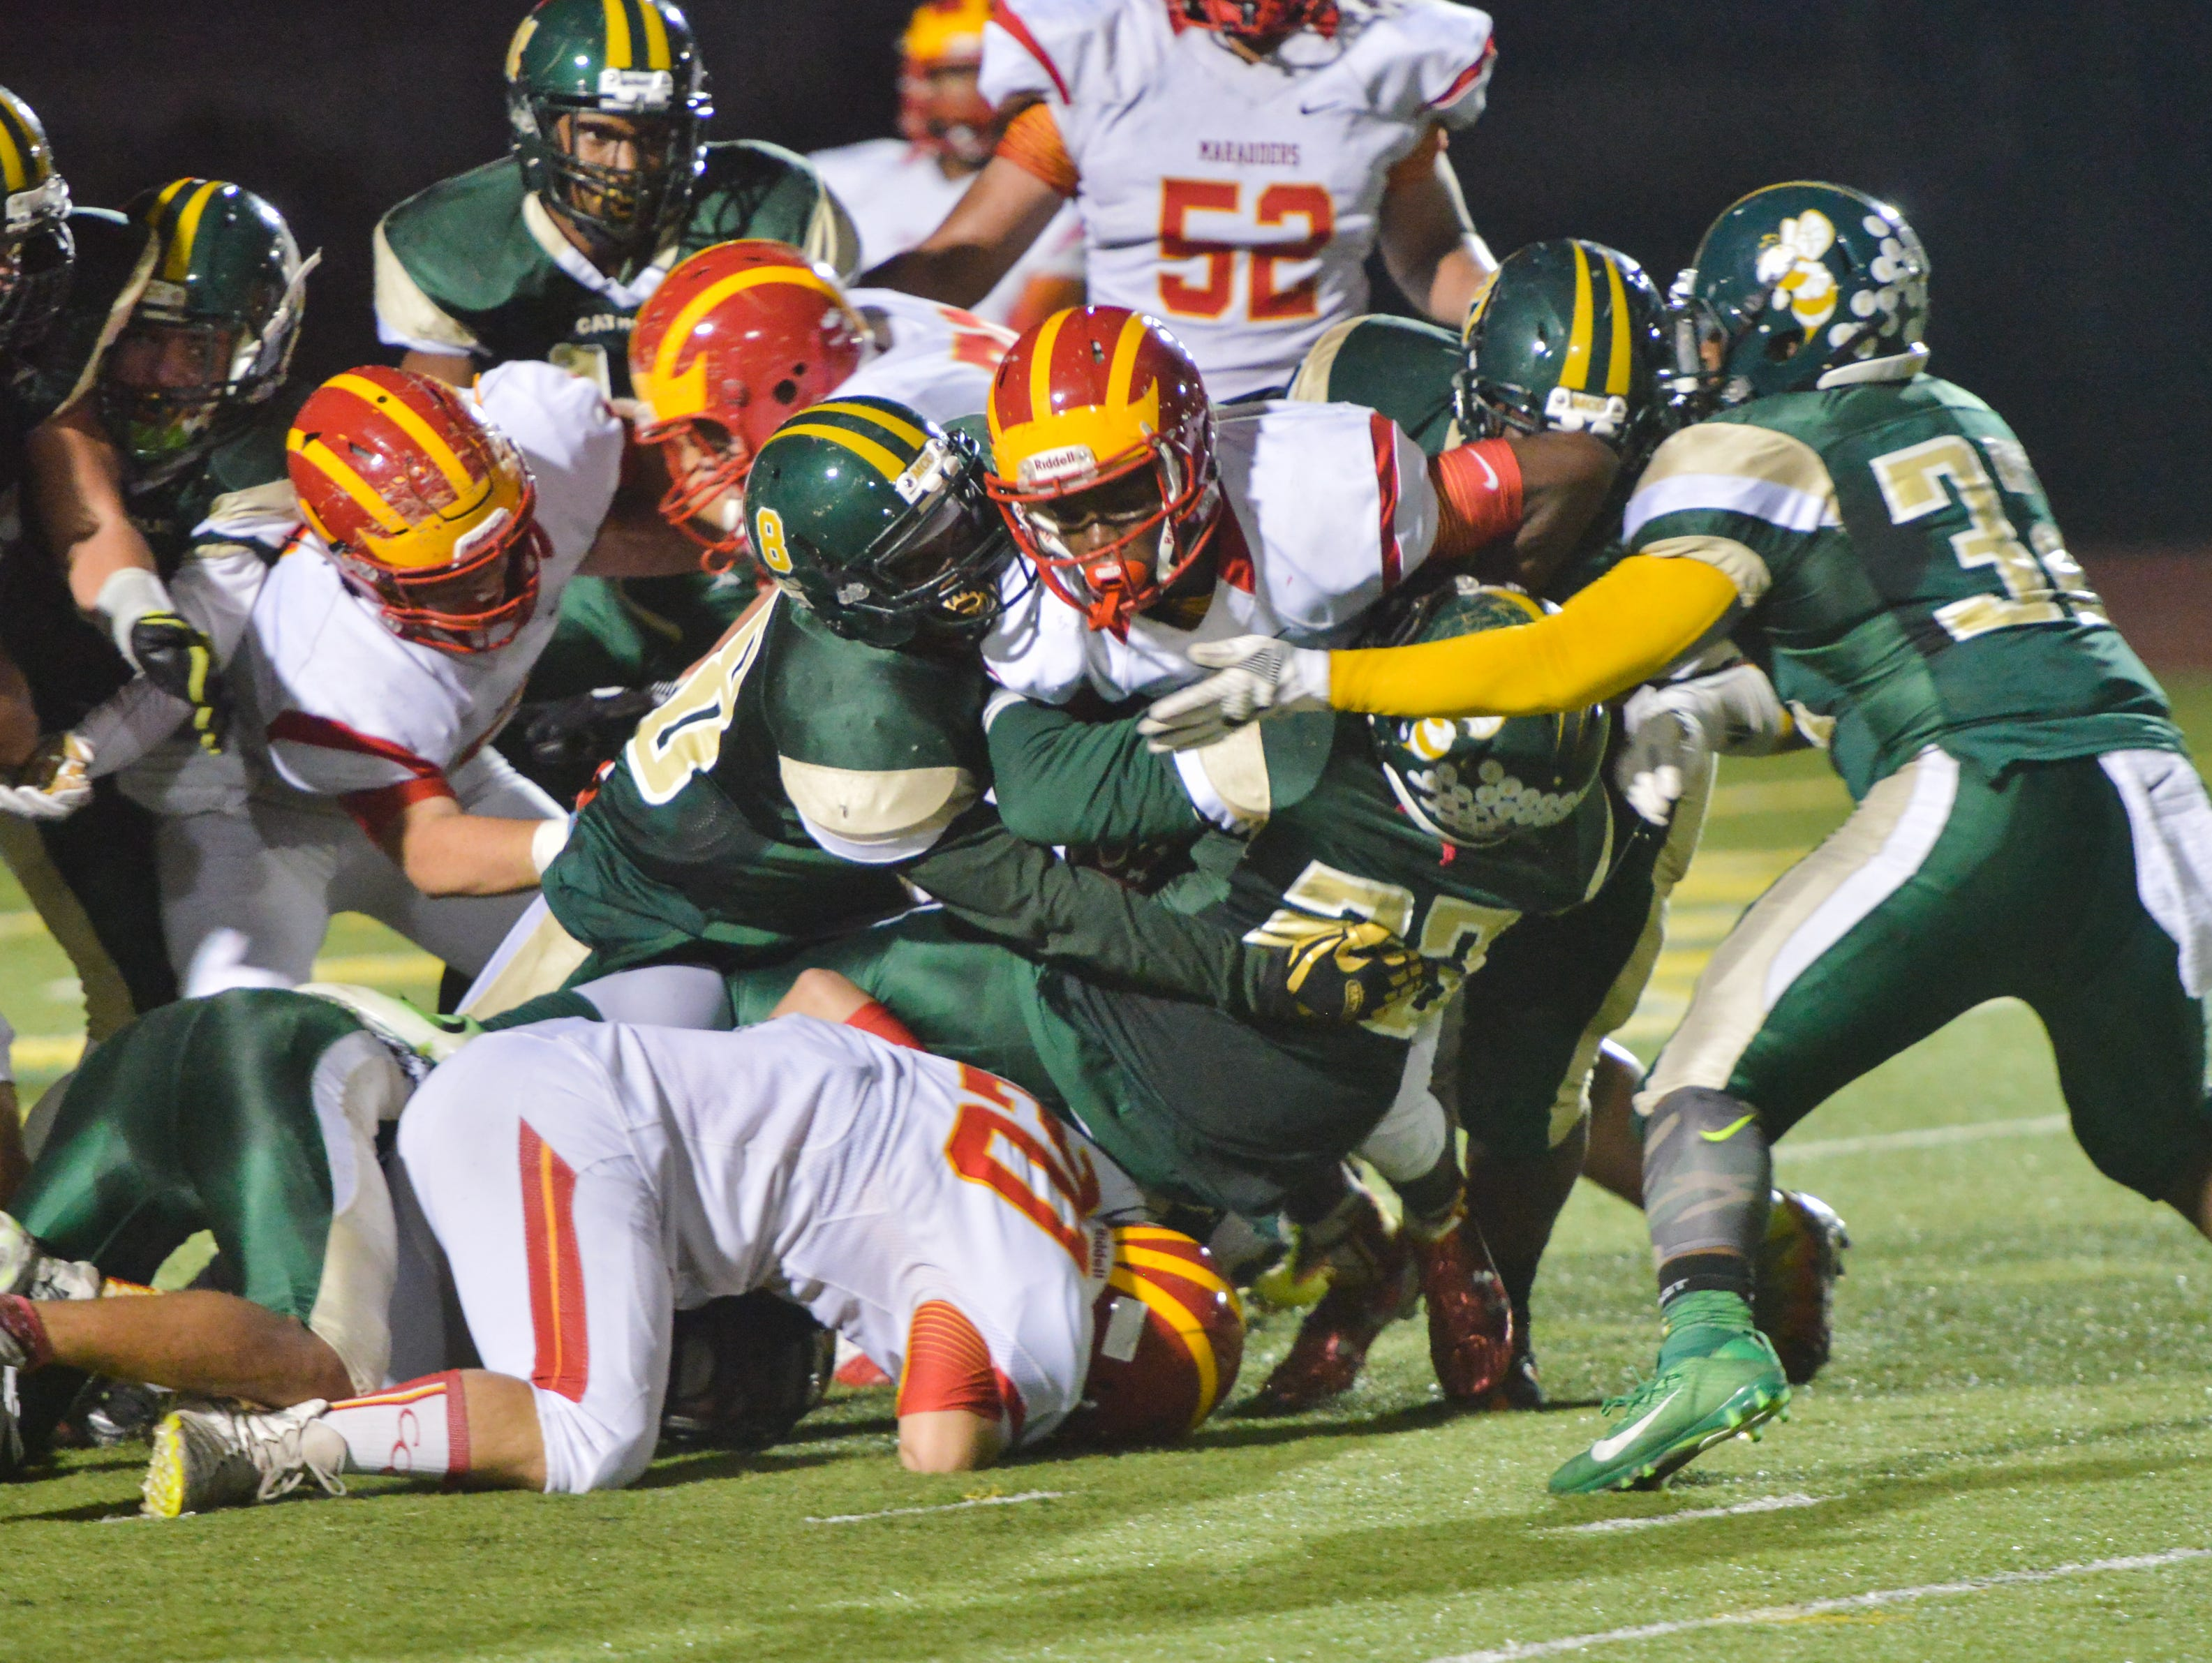 The Melbourne Central Catholic defense stops Clearwater Central Catholic from scoring on a fourth down during the second quarter.